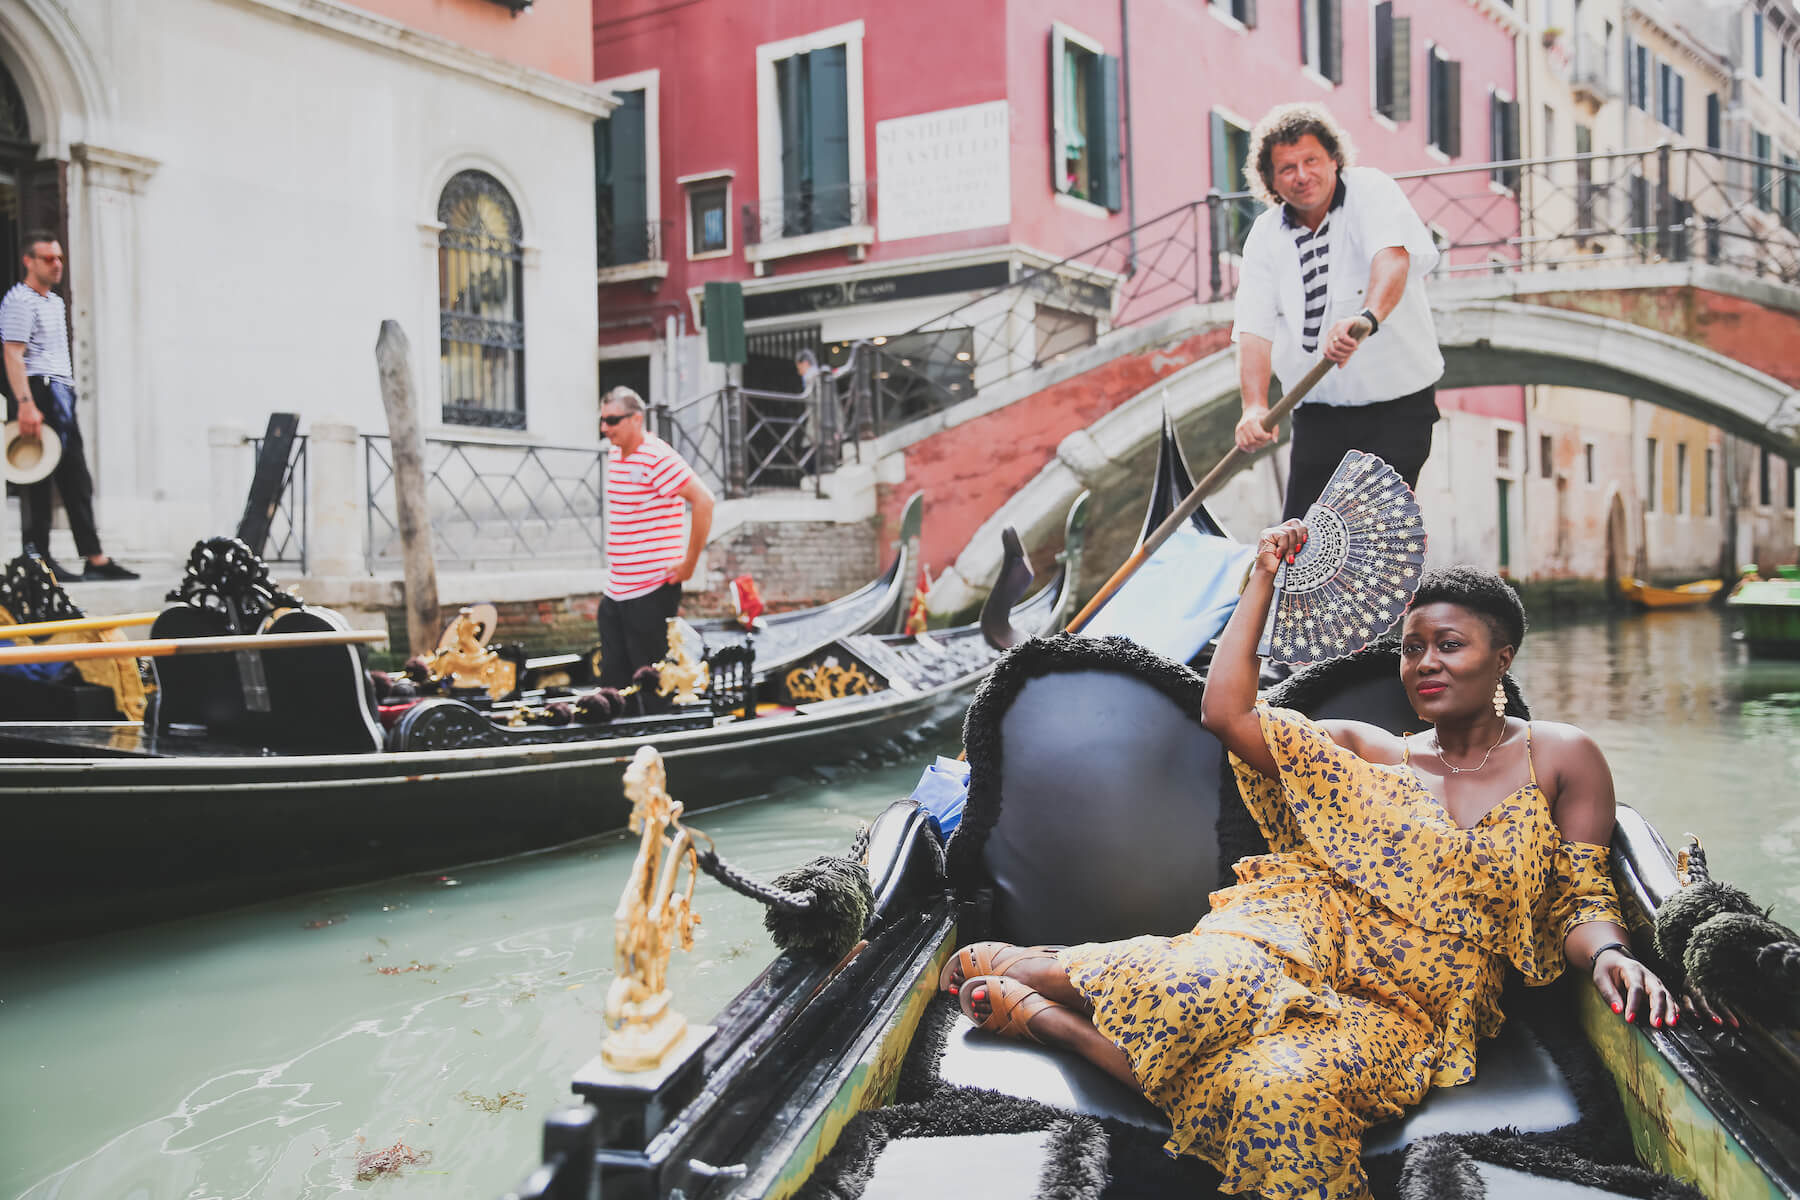 Woman in gold dress on a gondola boat in Venice, Italy